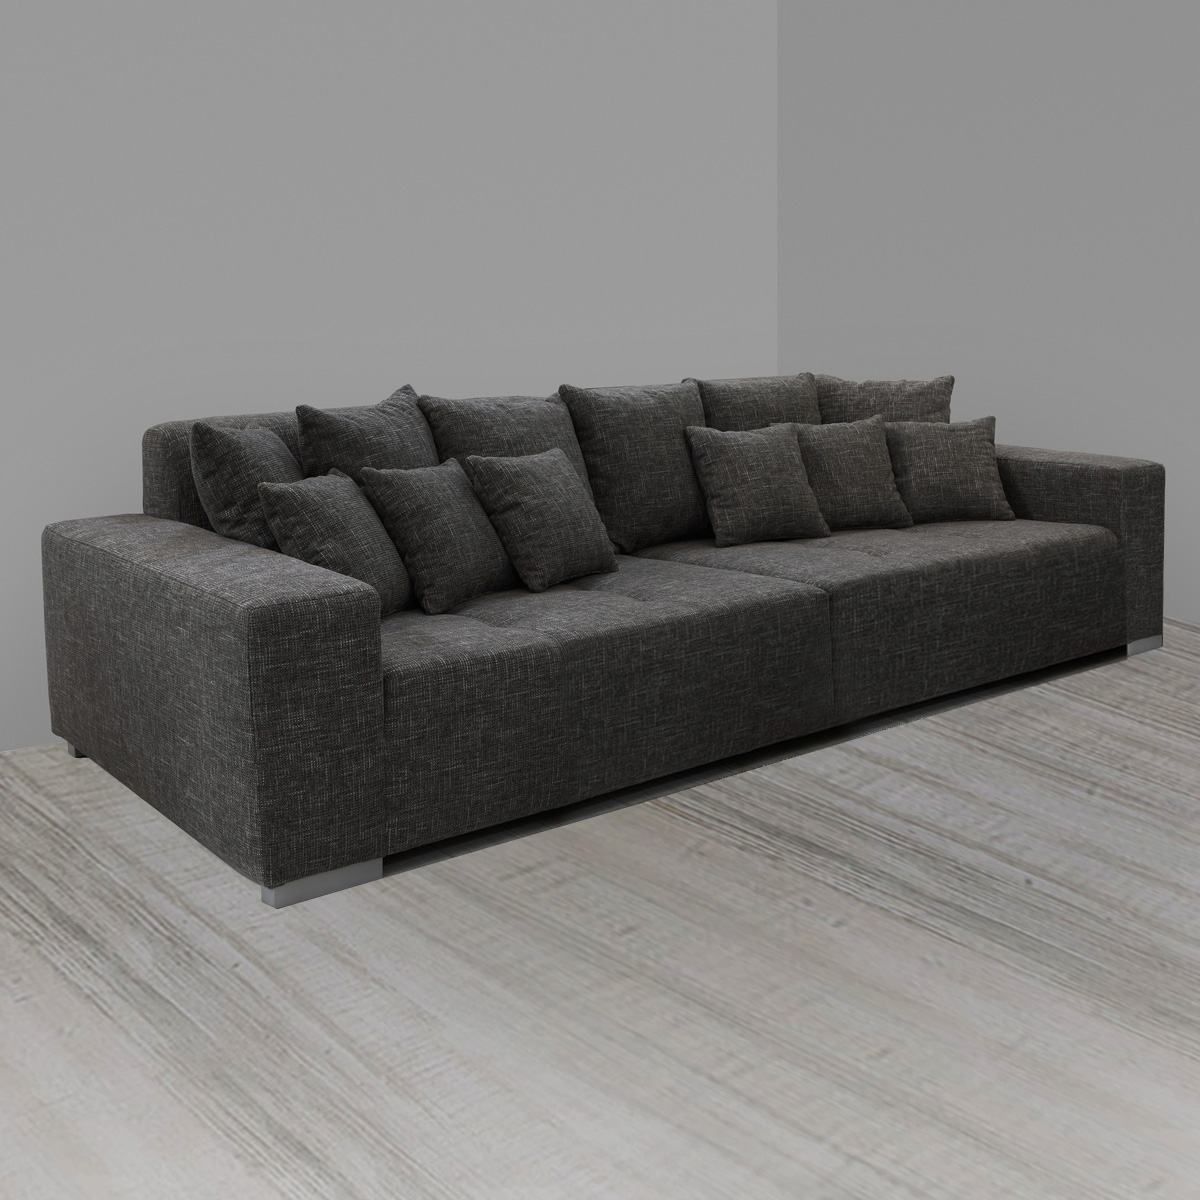 Innenarchitektur Big Sofa Grau Galerie Von Awesome Awesome With Weiss With Braun With